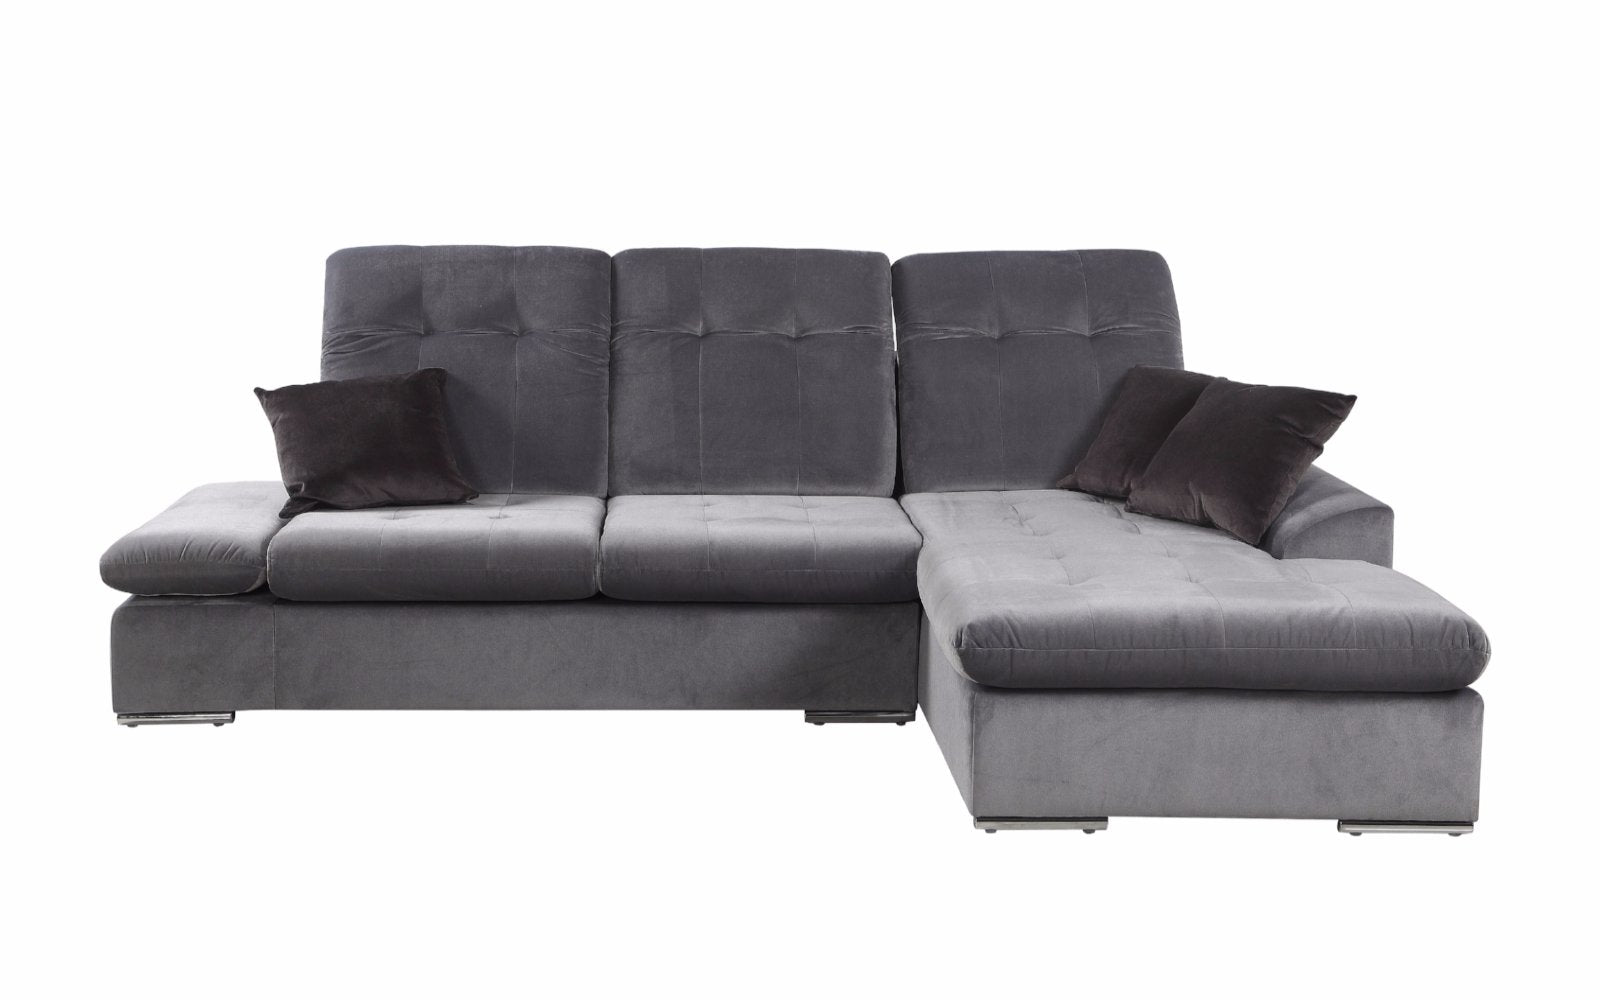 Concorde Modern Microfiber Sectional Sofa with Right Chaise ...